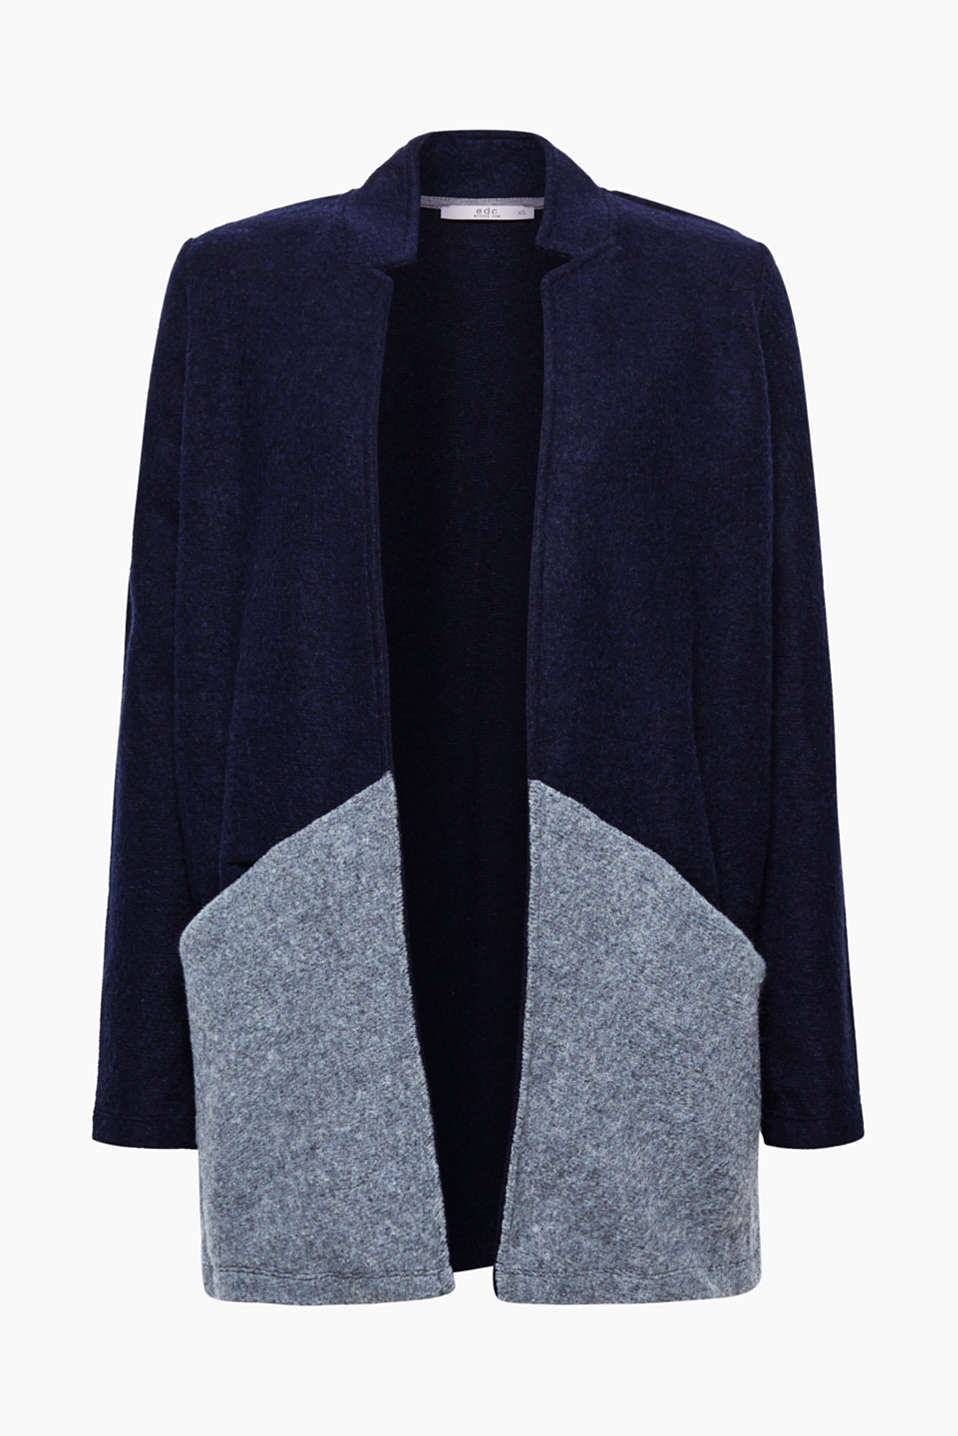 This open-fronted jacket is a brilliant alternative to a cardigan with its woolly, soft material in a colour block look.